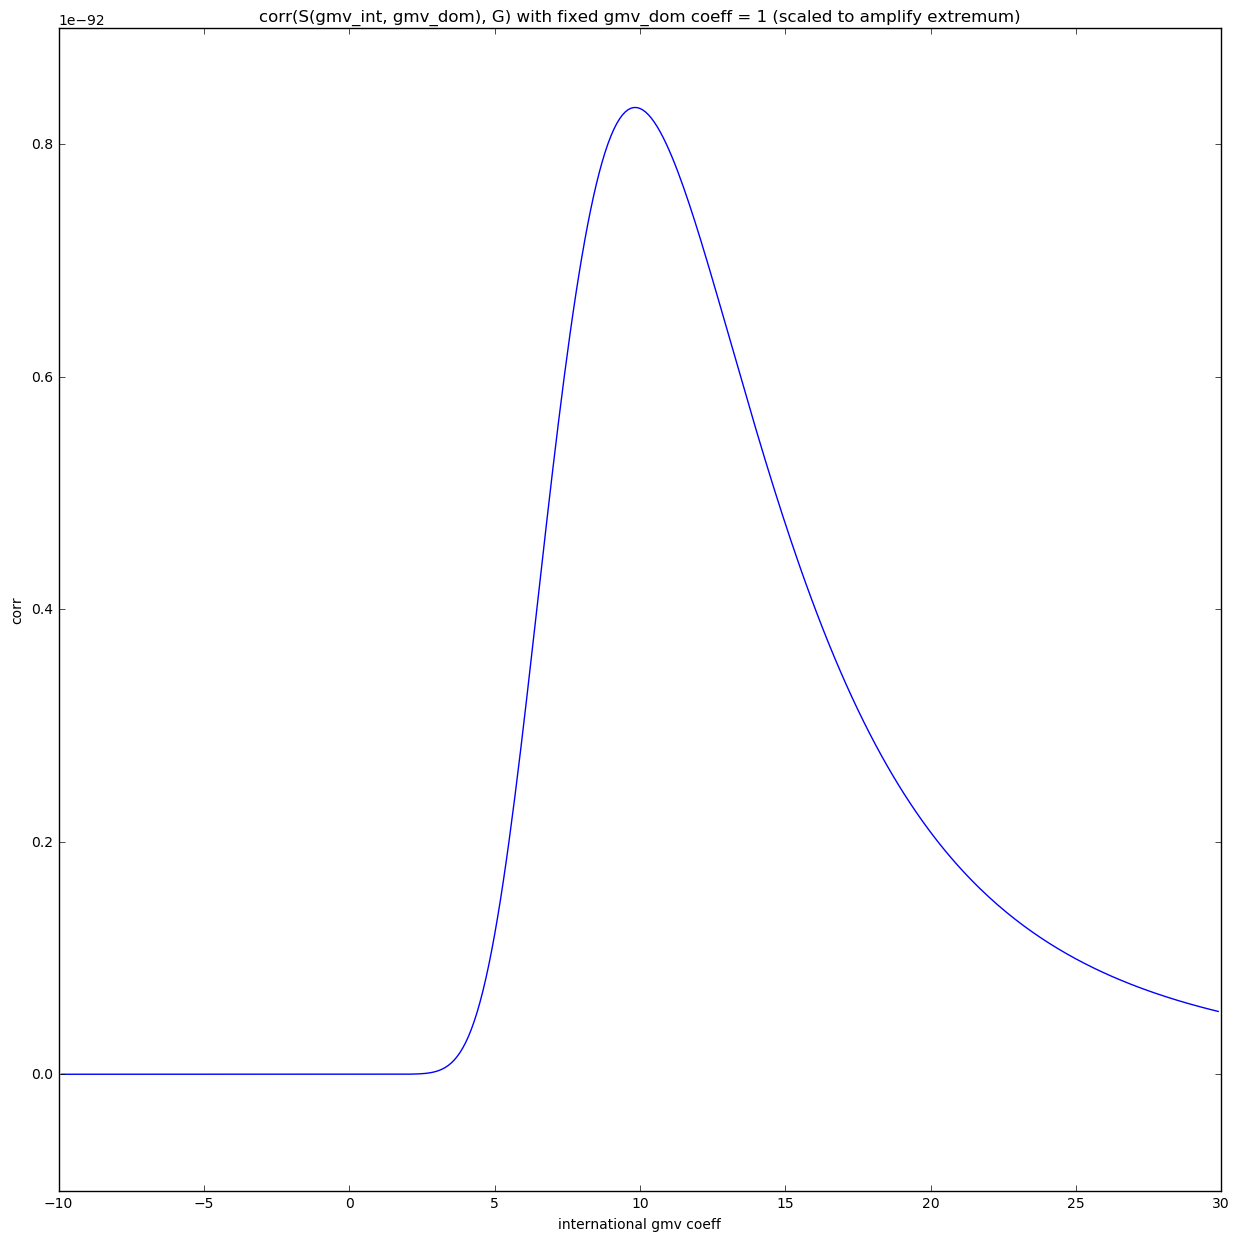 Correlation space - 2 features - difference amplified